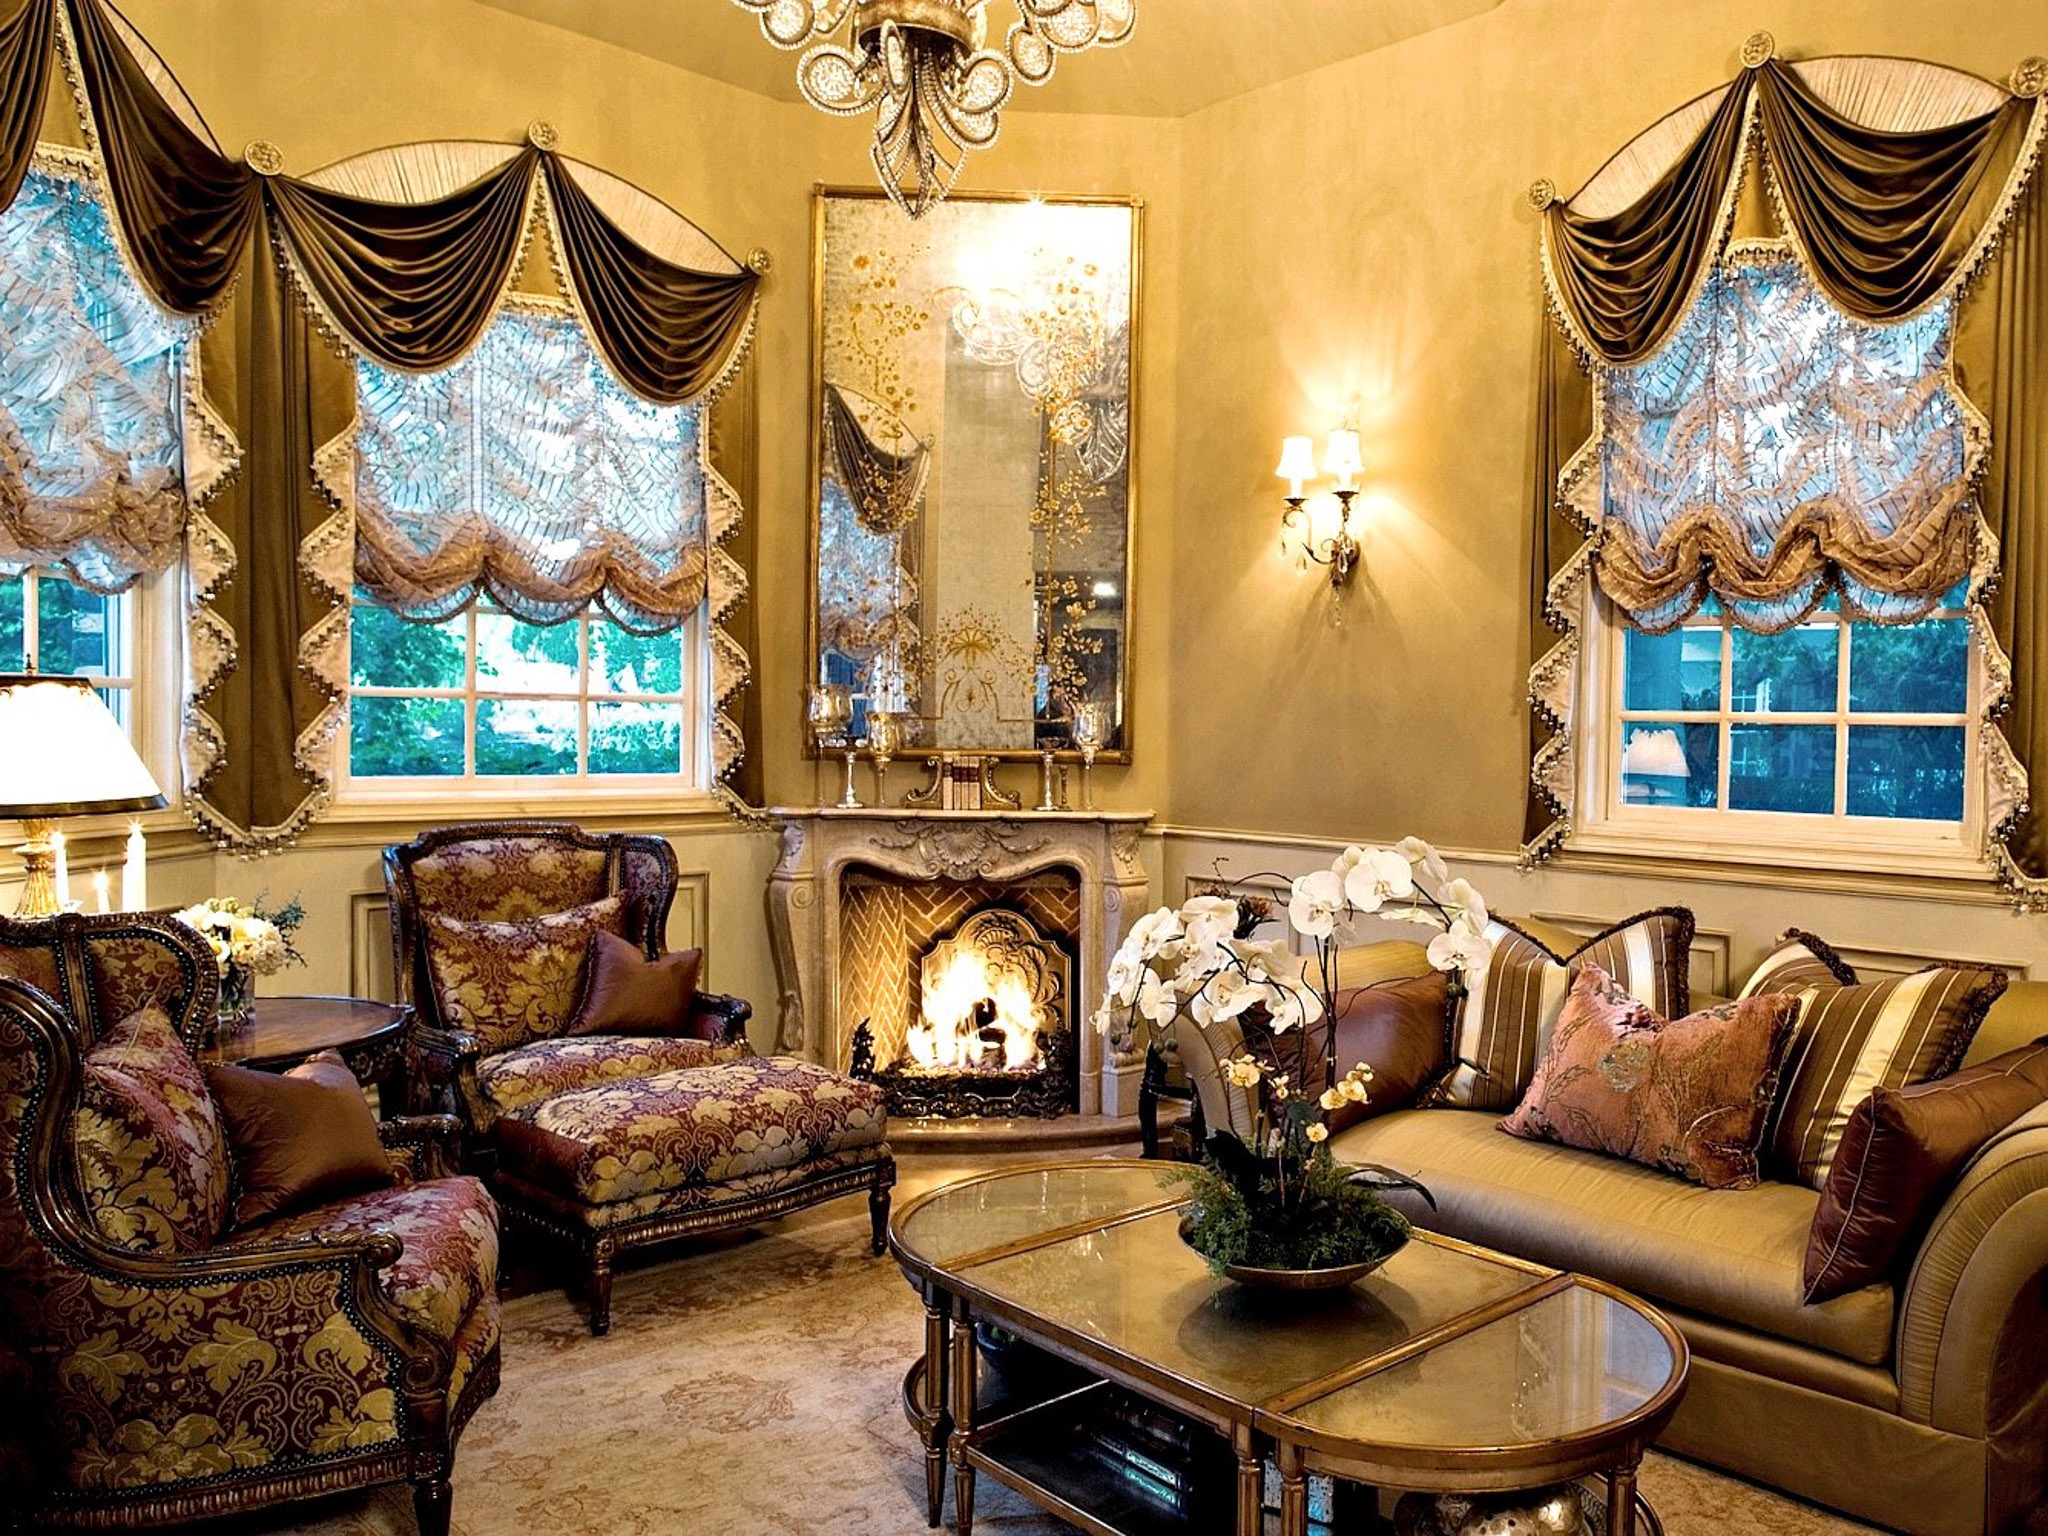 Featured Image of Moroccan Living Room For An Exotic Interior Style